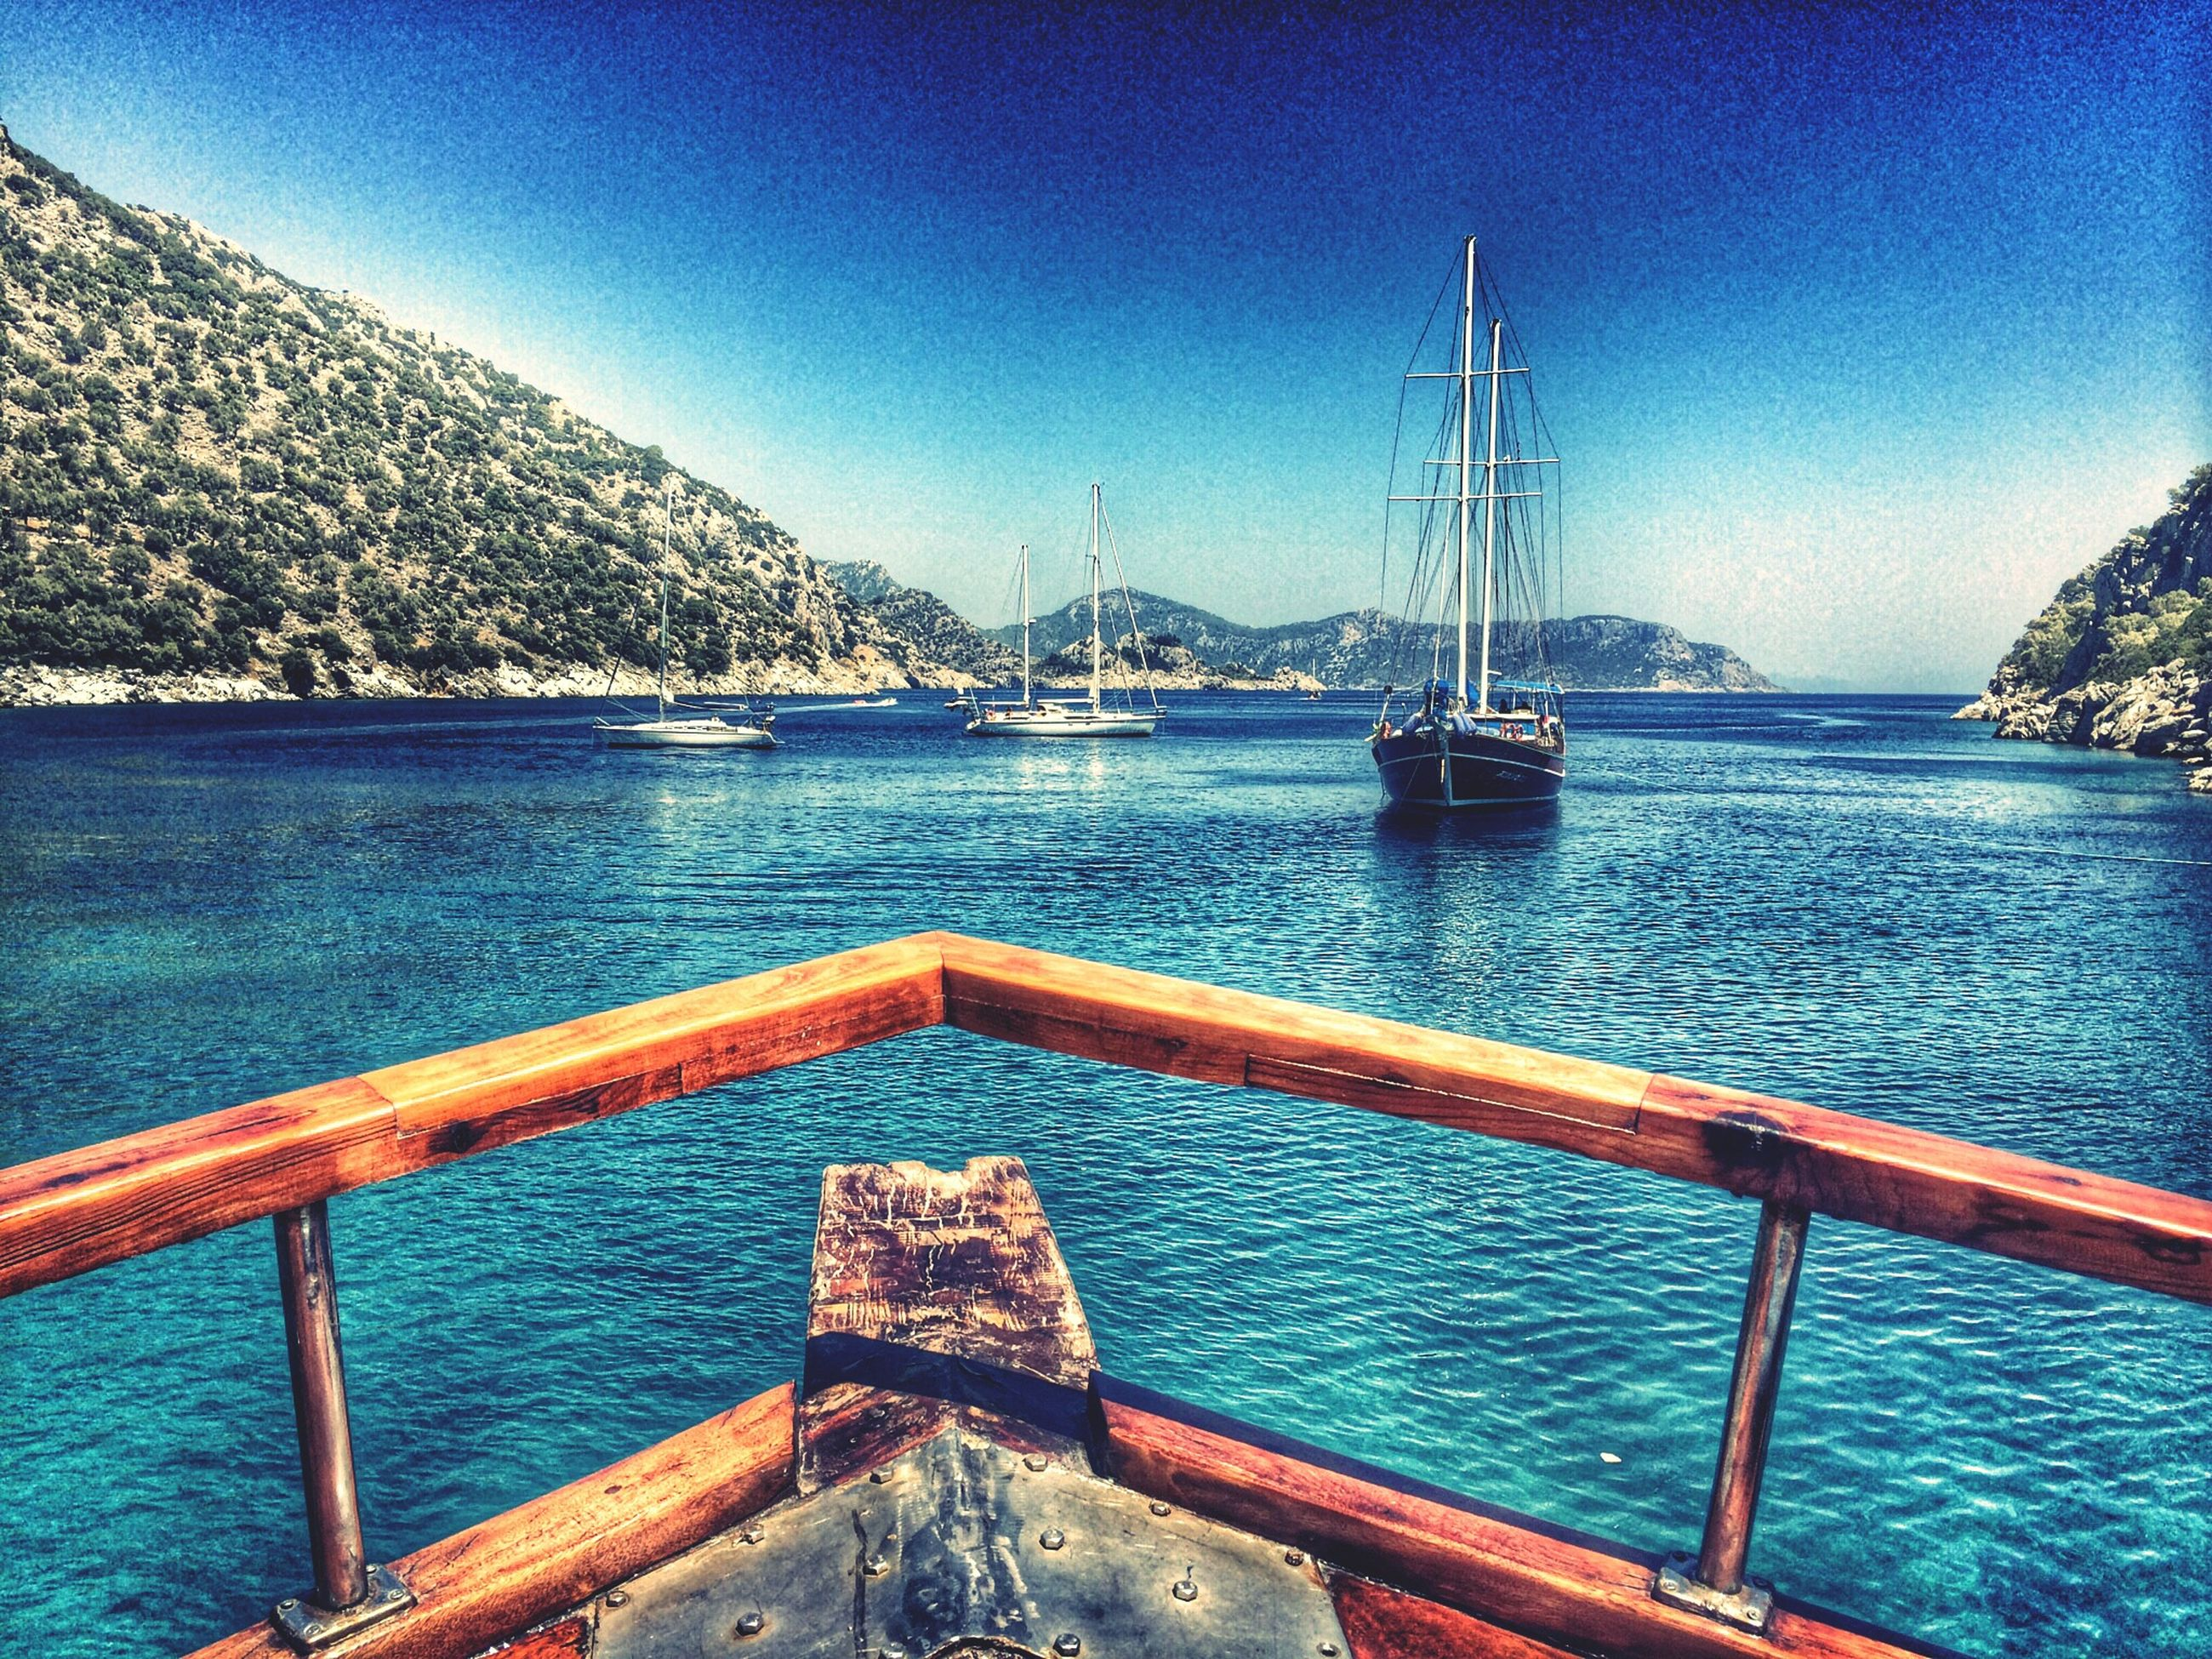 nautical vessel, transportation, water, mode of transport, boat, blue, sea, clear sky, moored, tranquility, mountain, tranquil scene, scenics, beauty in nature, nature, sailboat, pier, sailing, travel, sky